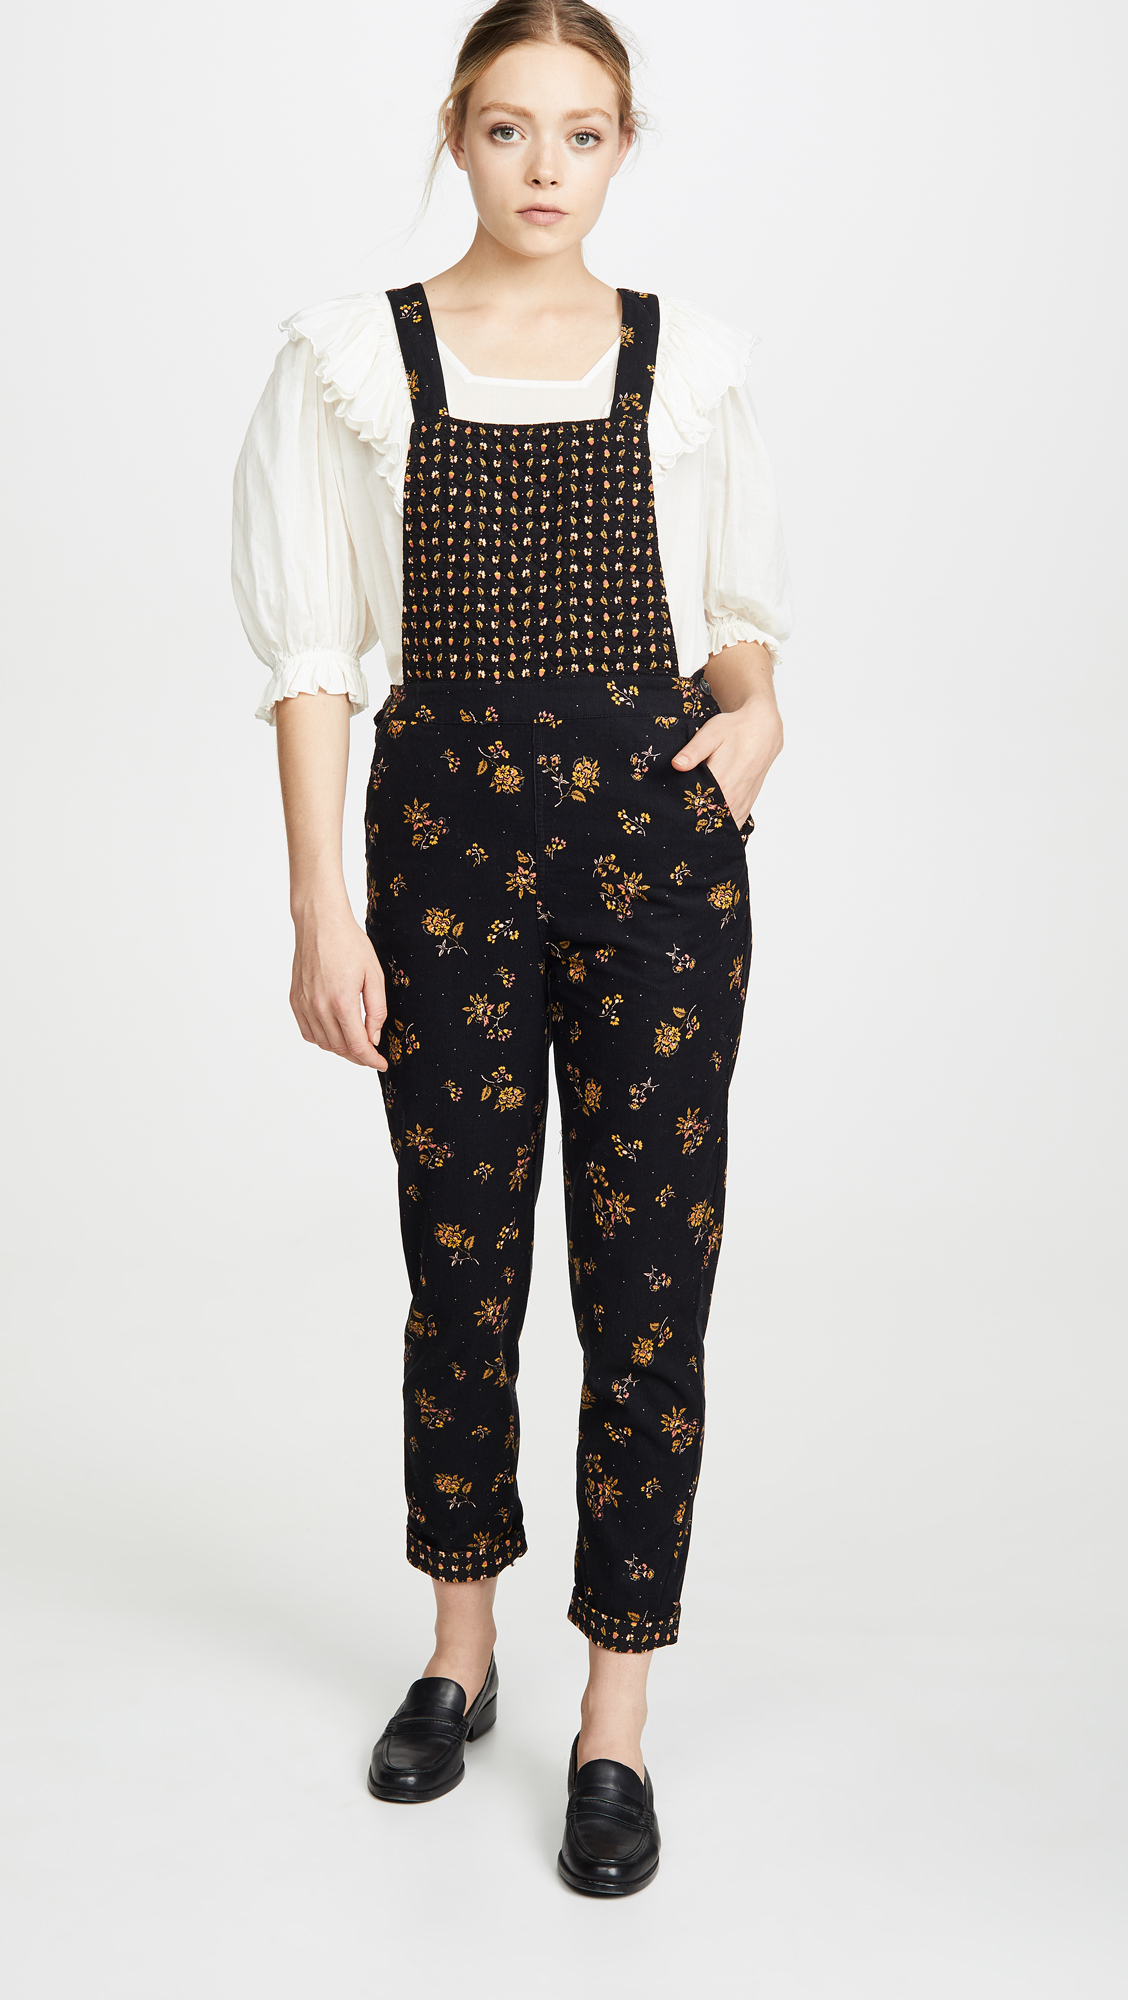 Madewell Cord Floral Overalls - Weekly finds, The Comfiest Cheetah Flats